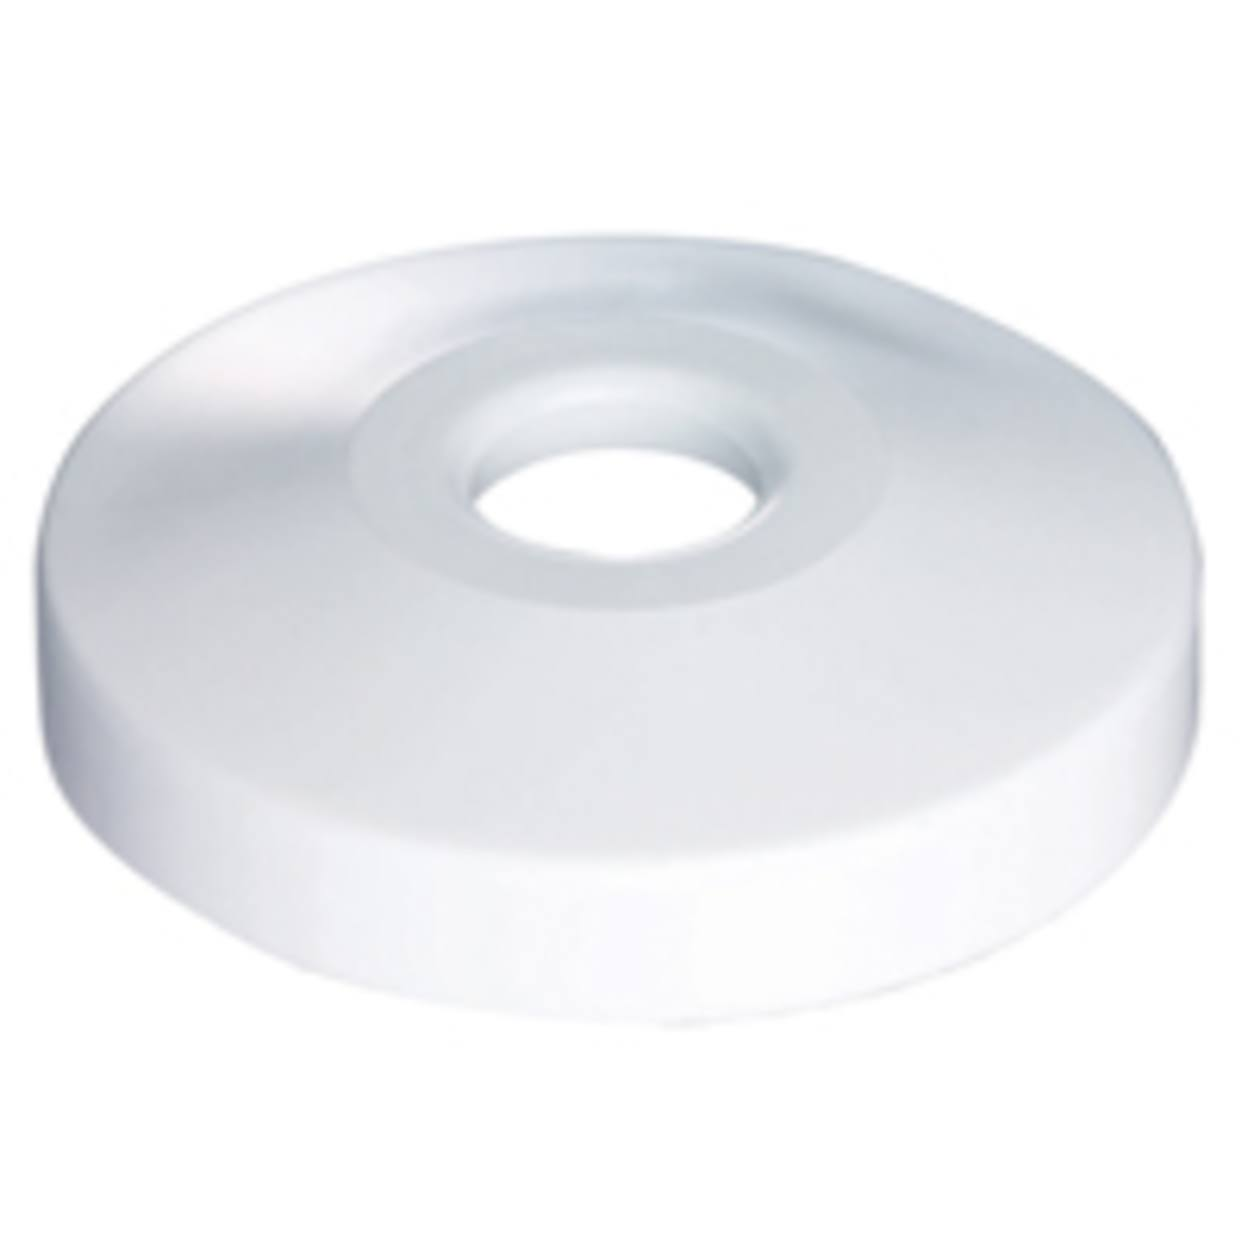 Plumb Pak PP80884 Shallow Slip On Bath Flange - 1.3cm, Plastic, White